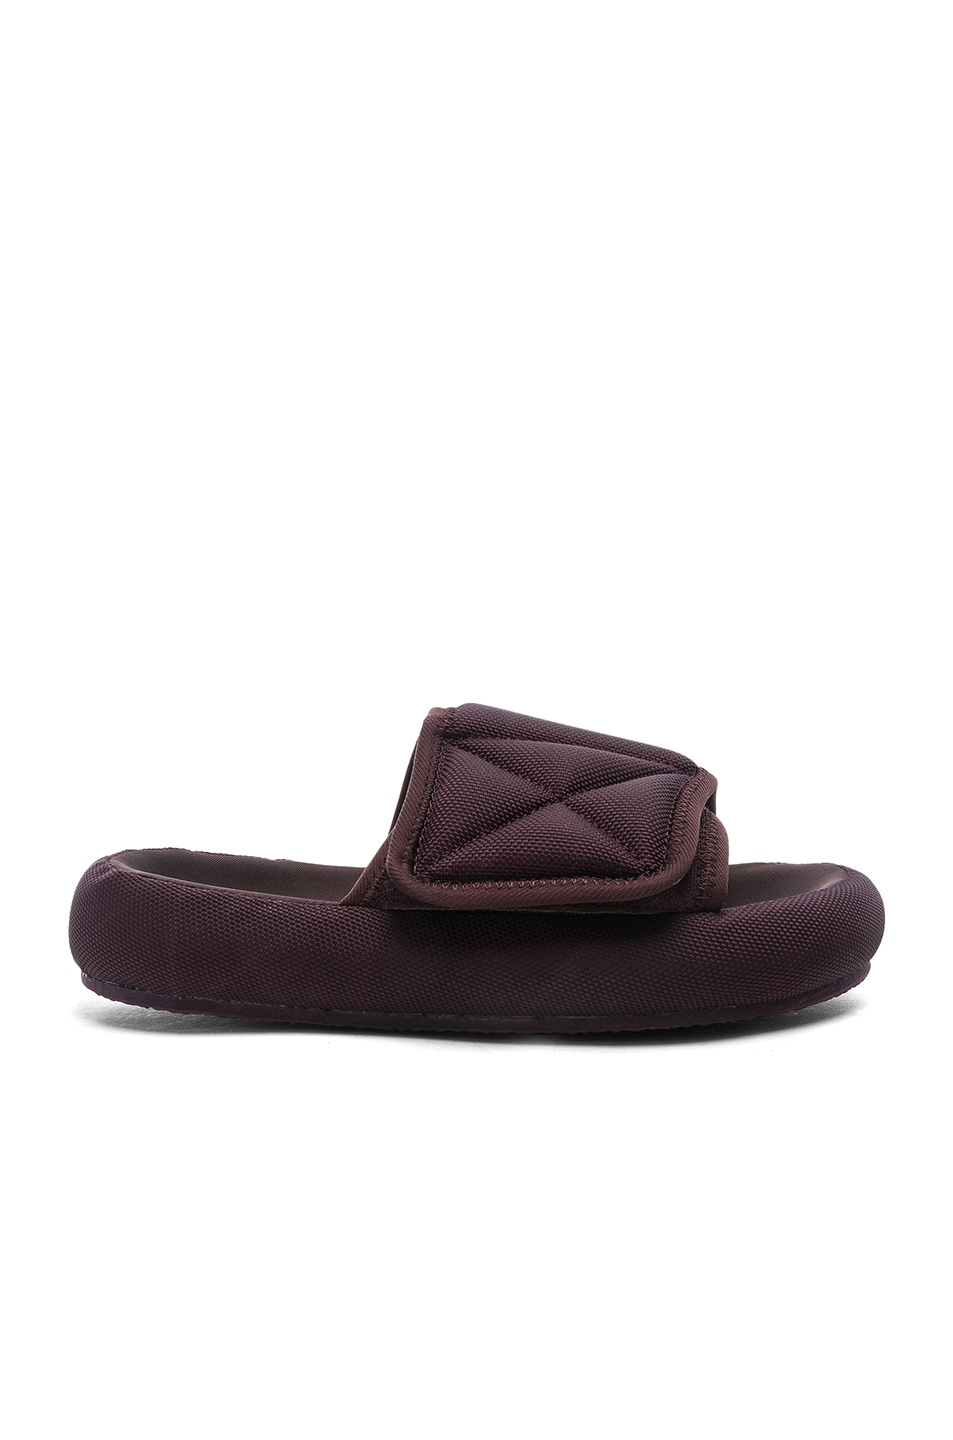 7b13f1550566 Image 1 of YEEZY Season 6 Nylon Slippers in Oxblood